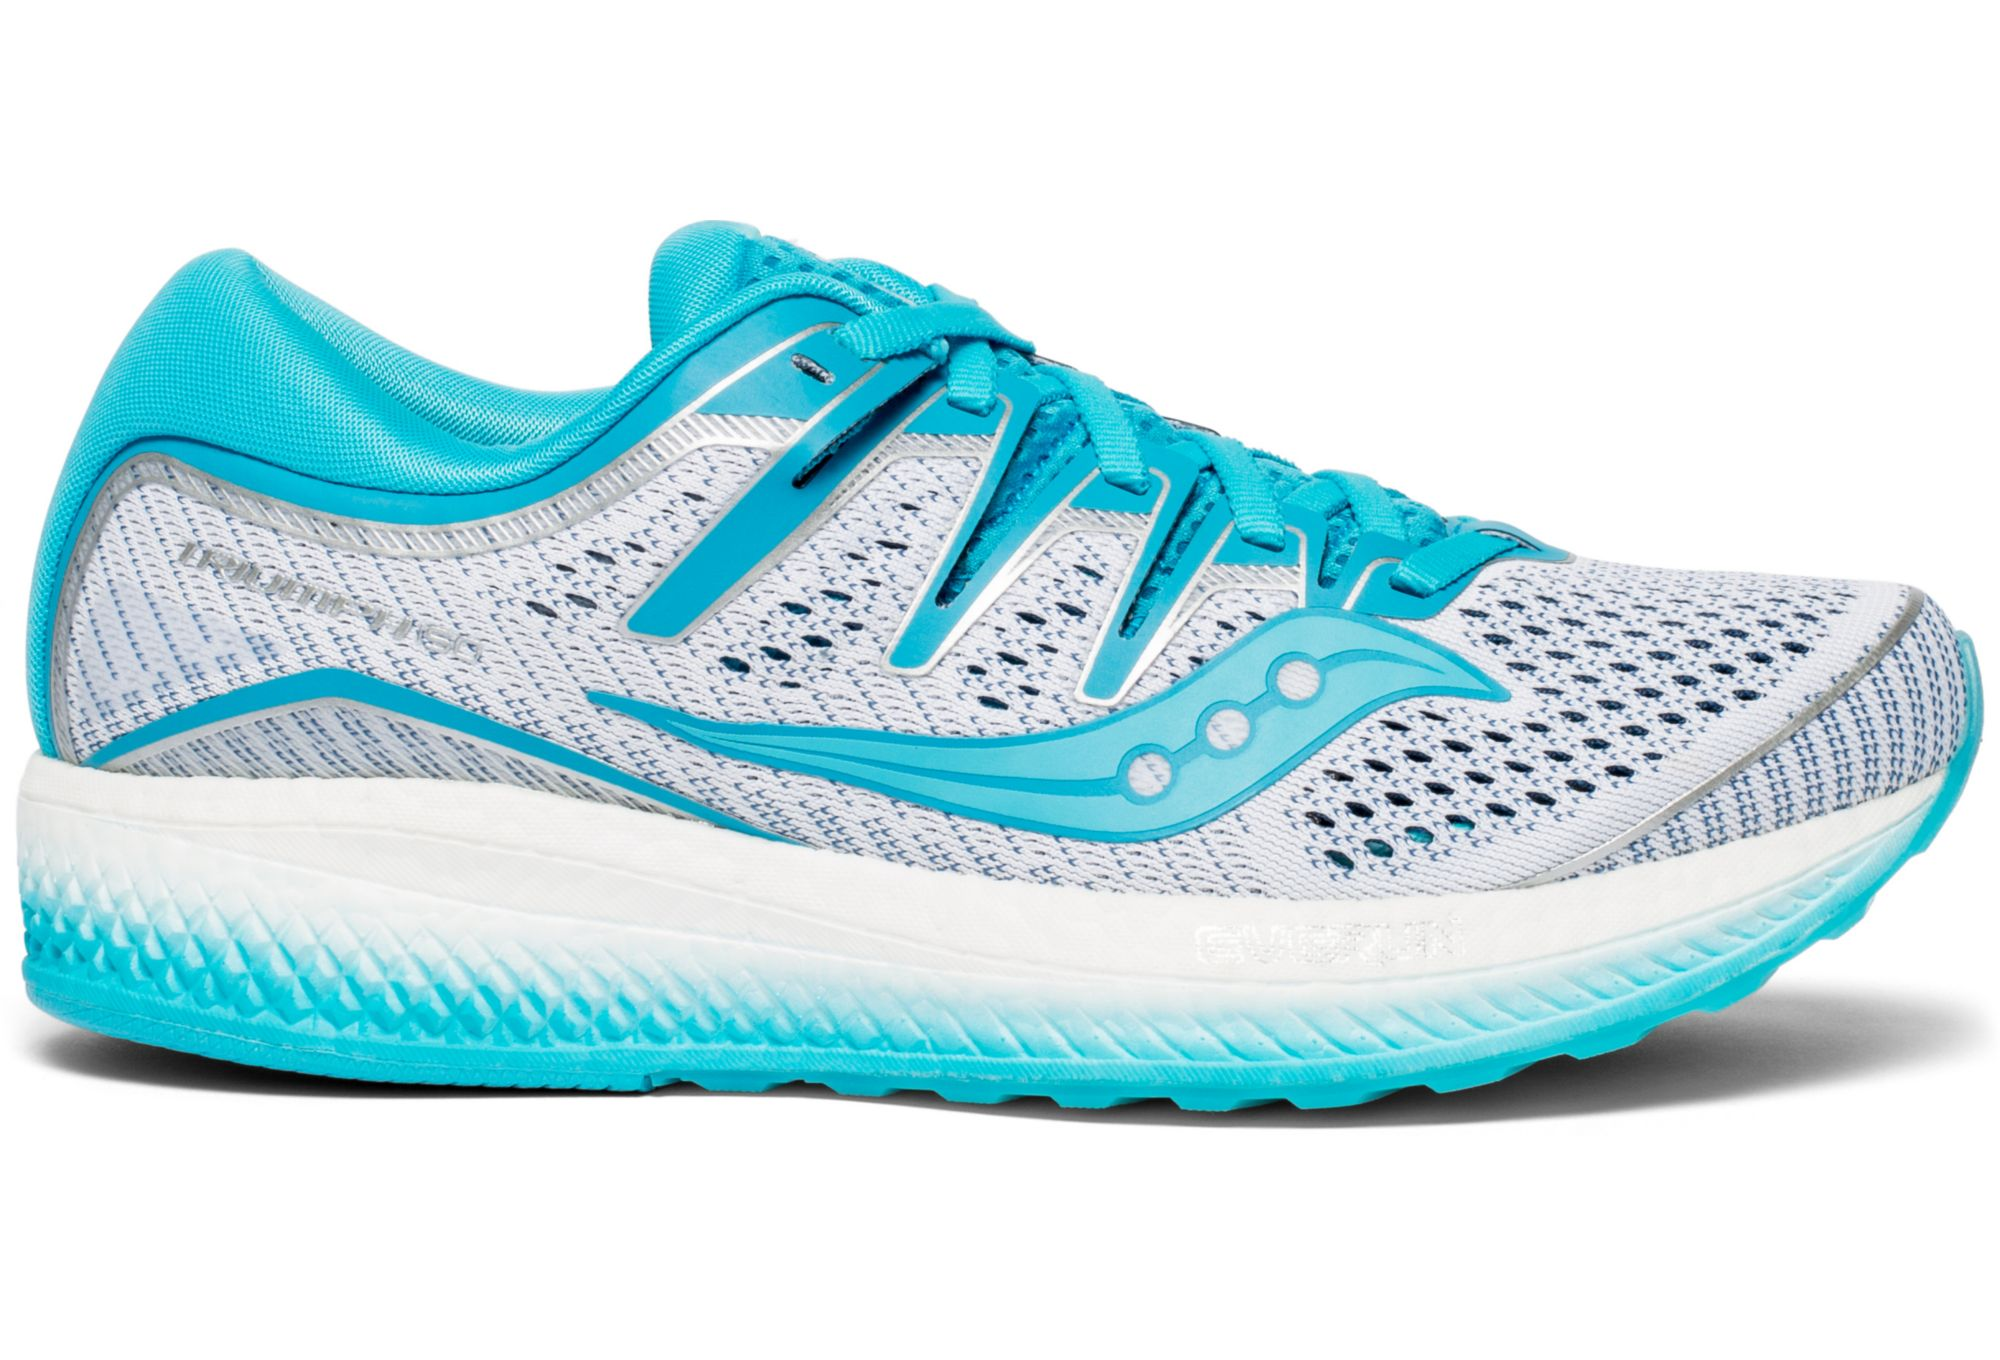 Saucony Triumph ISO 5Women's Running Shoes White Blue